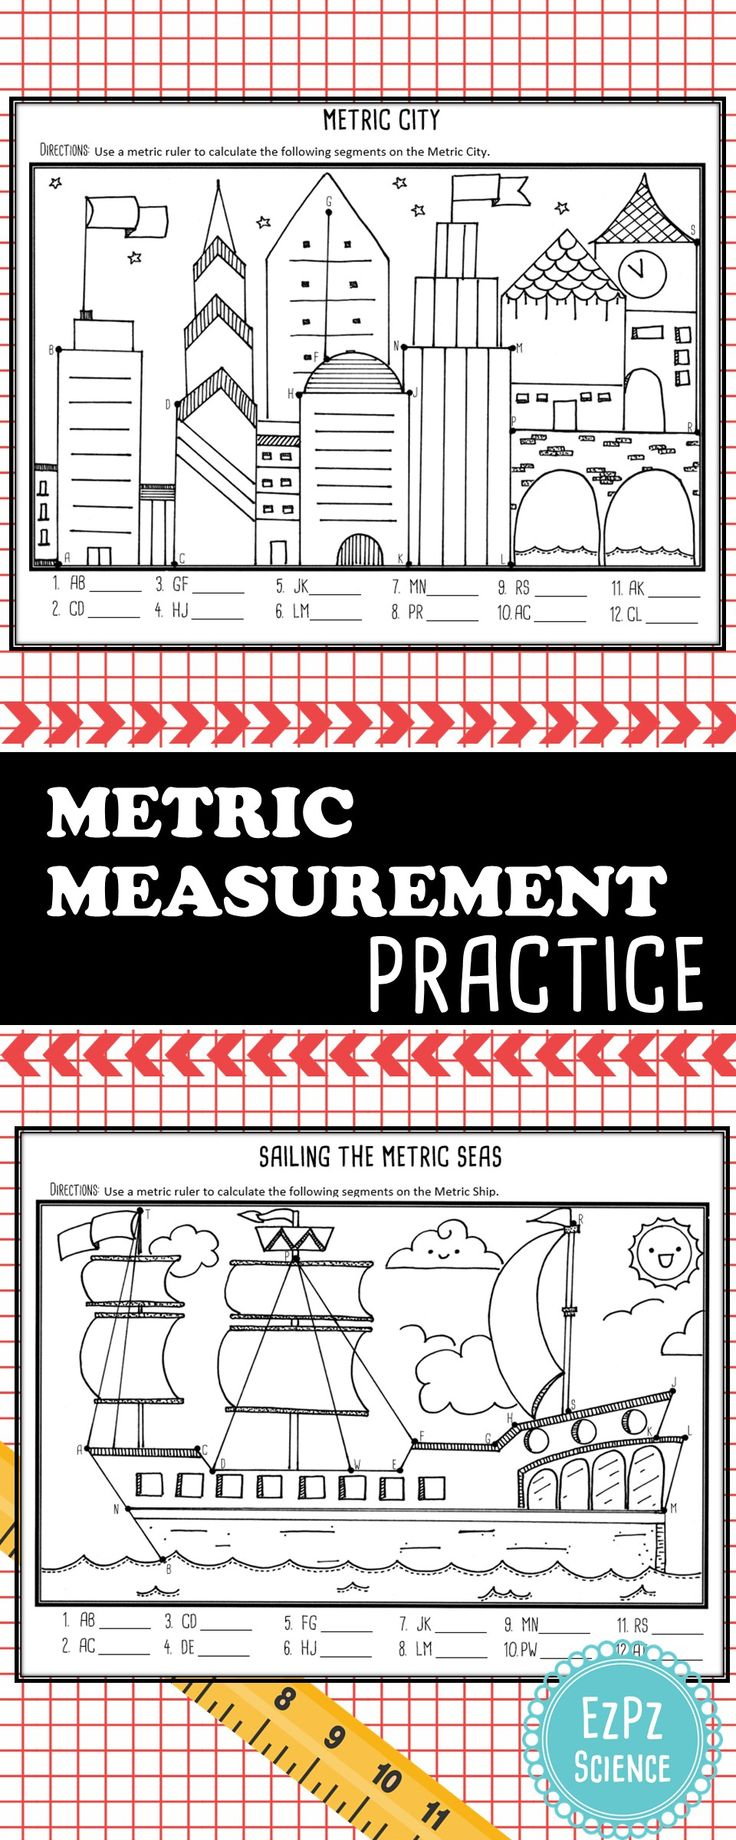 Worksheet Easy Ways To Remember The Metric System 1000 ideas about metric system on pinterest measurement a fun way to get students practice measuring using the system